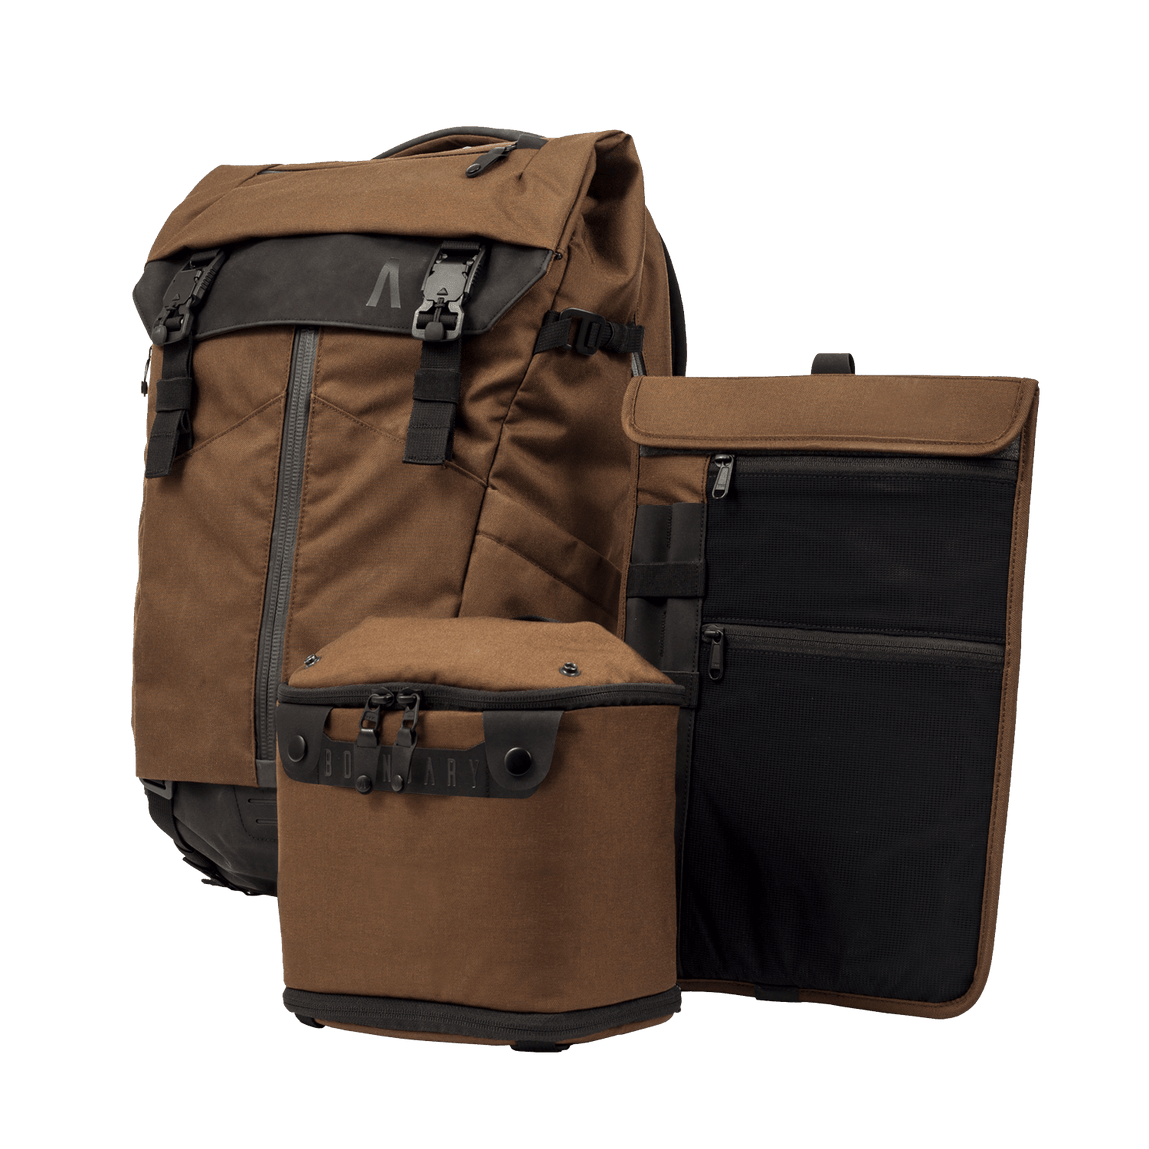 2018 BEST CAMERA TRAVEL BACKPACK SEE THE REVIEWS PRIMA SYSTEM Boundary Supply